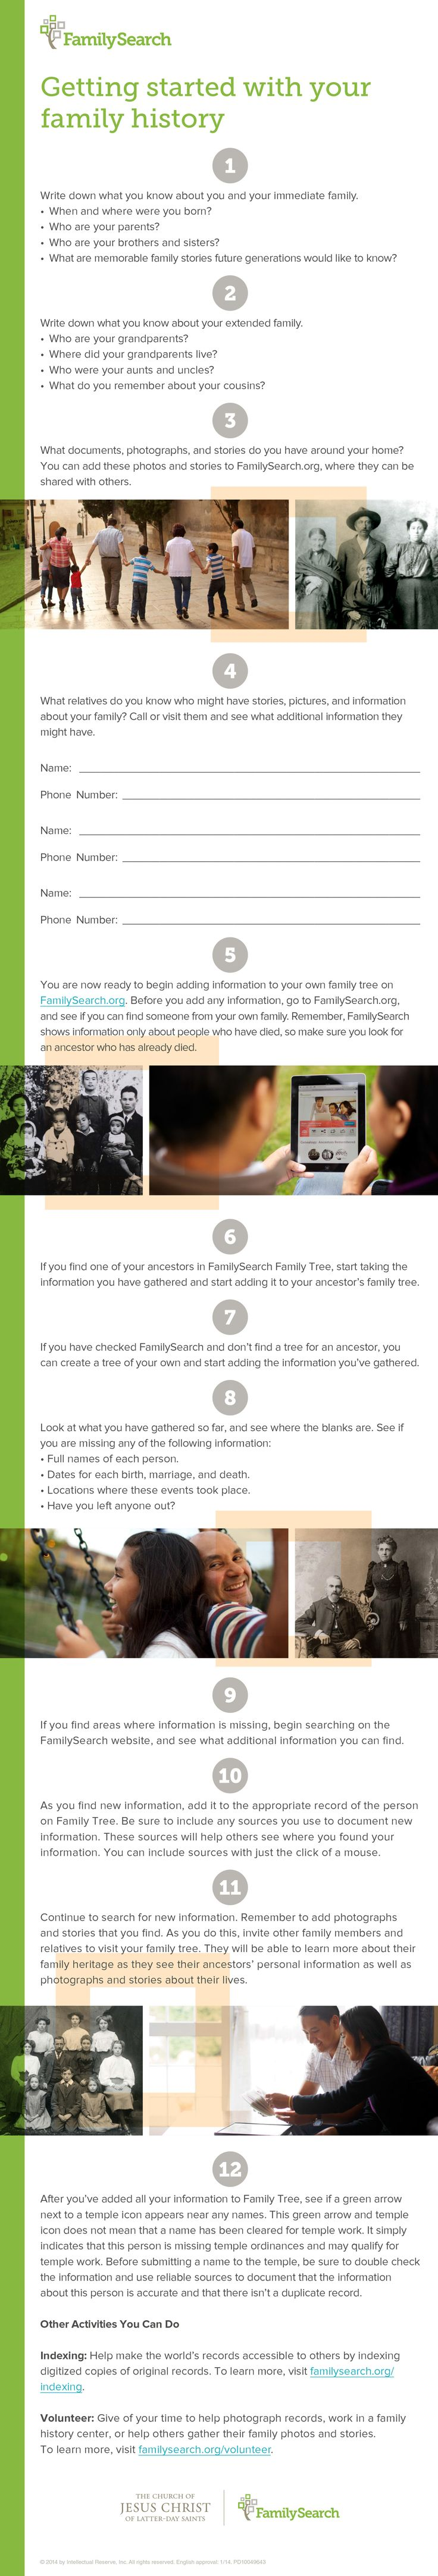 44 best tips and tricks familysearch images on pinterest family